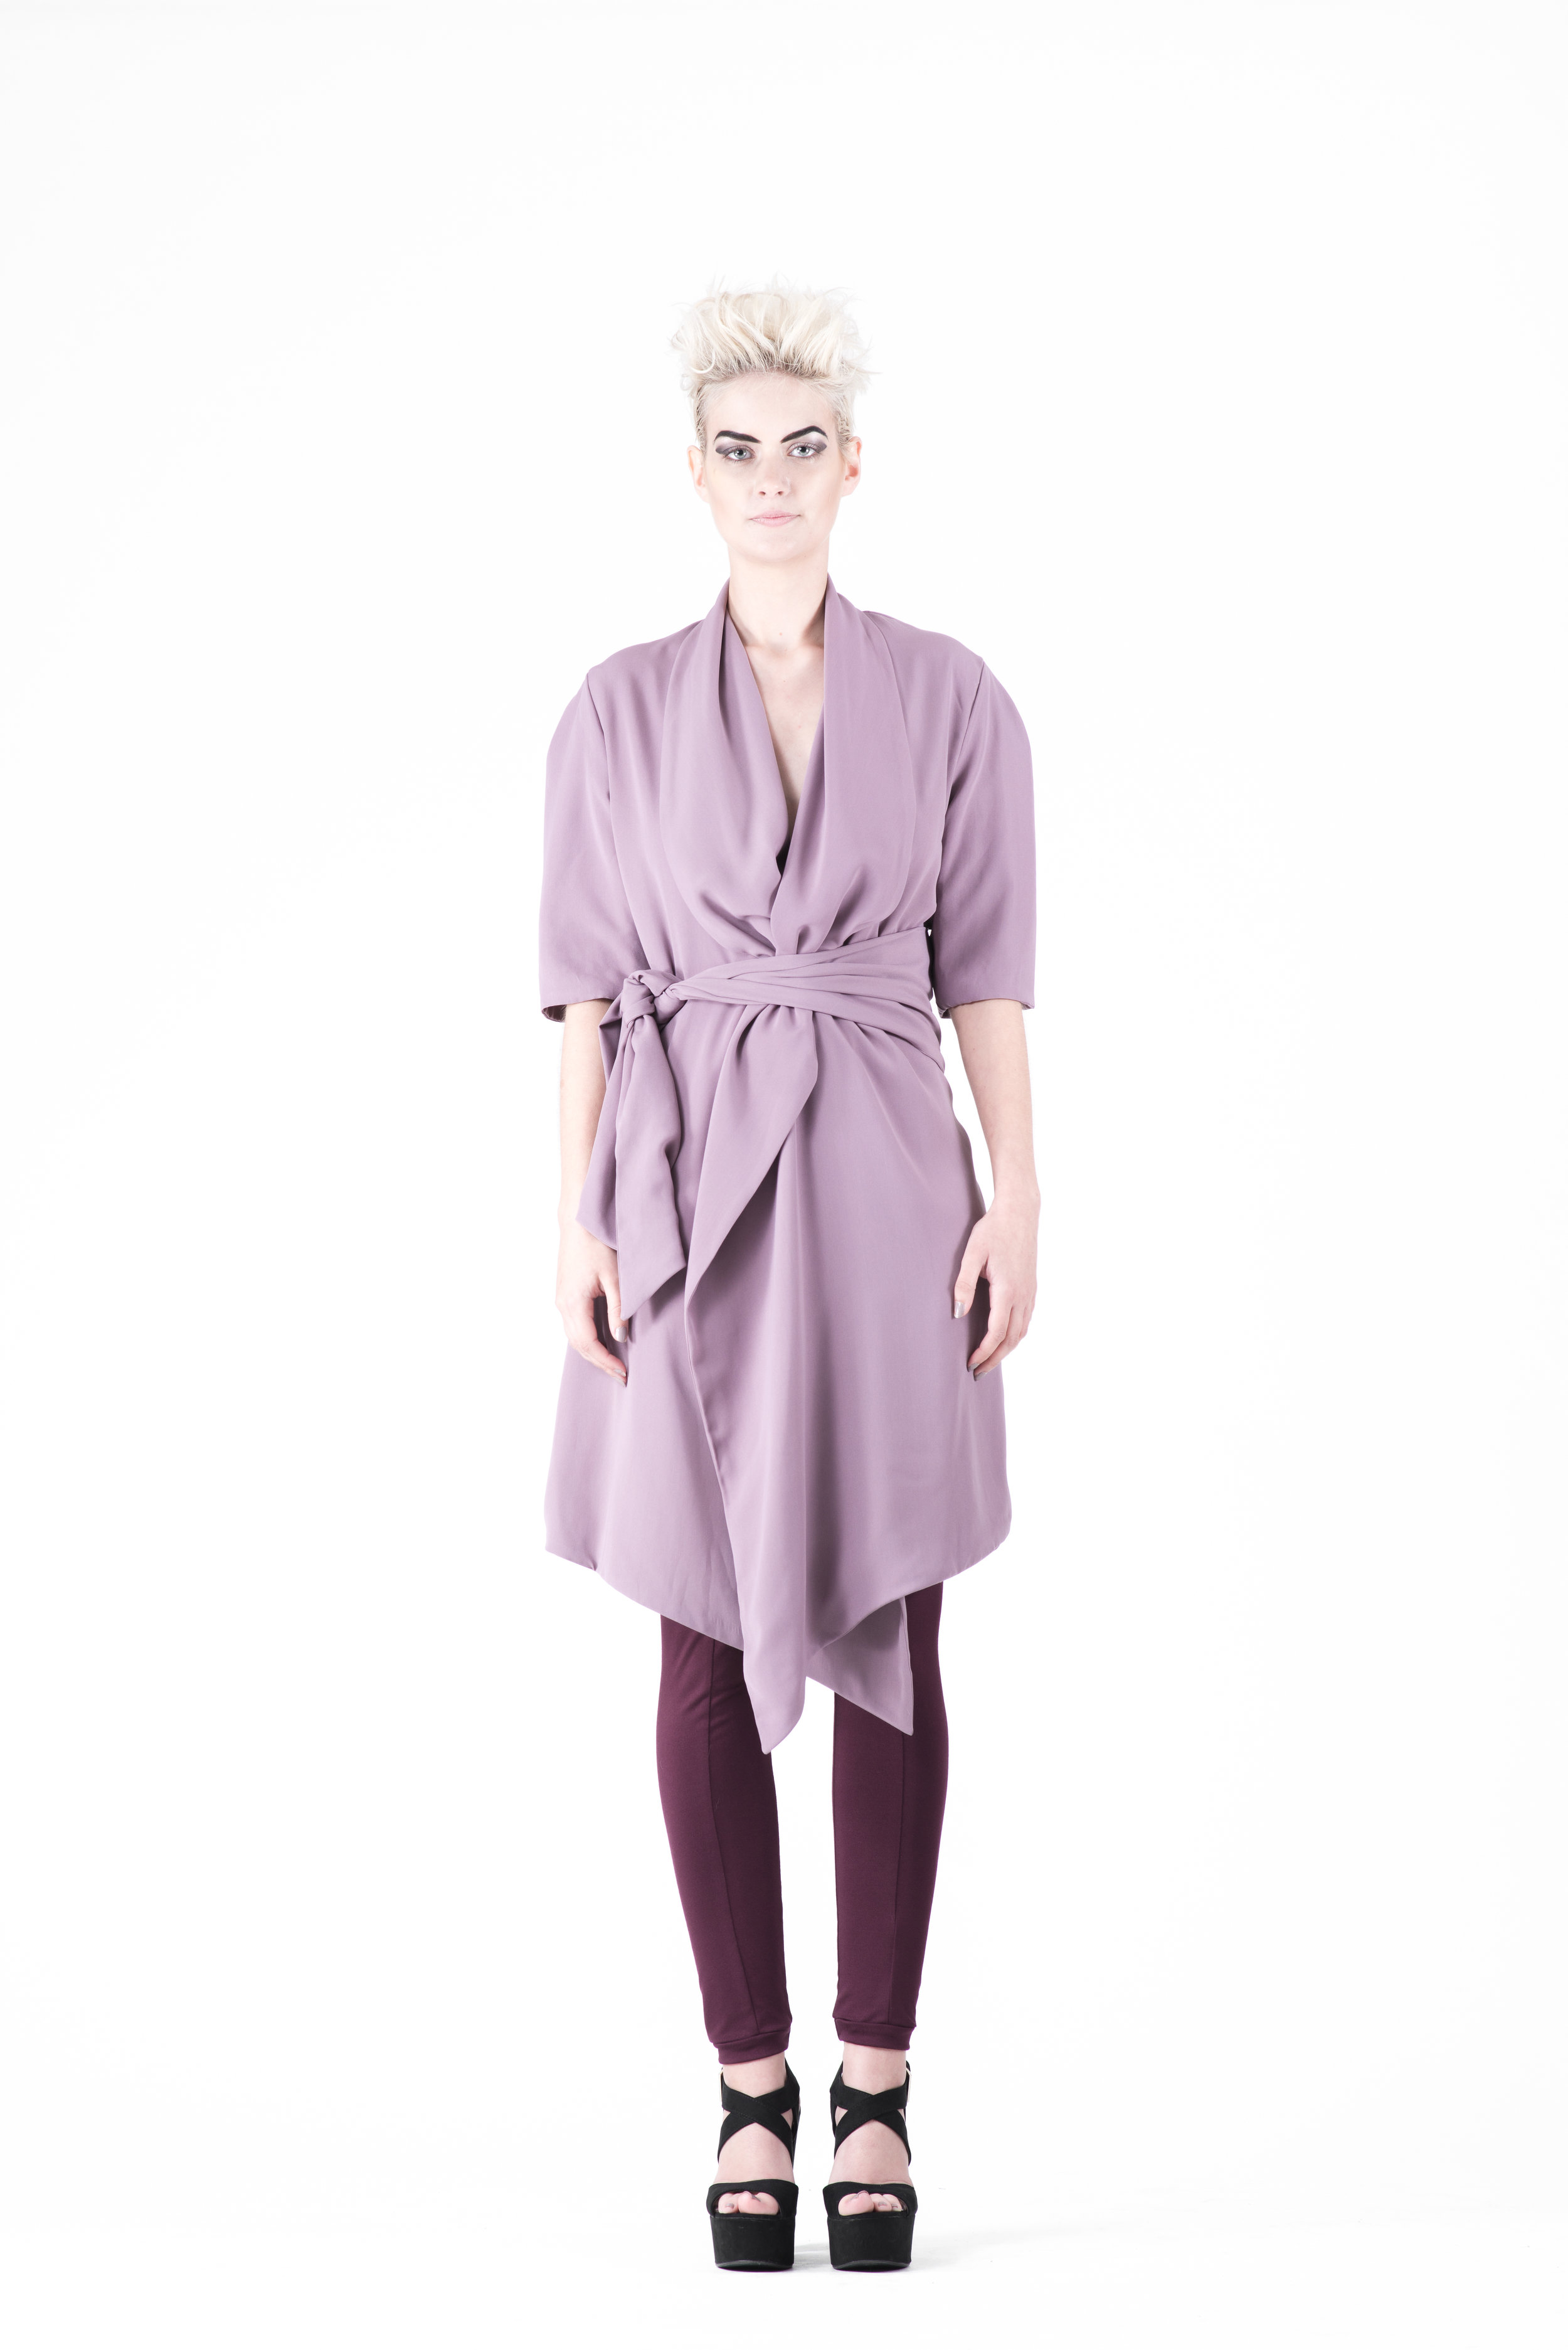 zaramia-ava-zaramiaava-leeds-fashion-designer-ethical-sustainable-tailored-minimalist-maika-mauve-dress-jacket-dress-versatile-rei-plum-legginges-drape-cowl-styling-womenswear-models-photoshoot-66